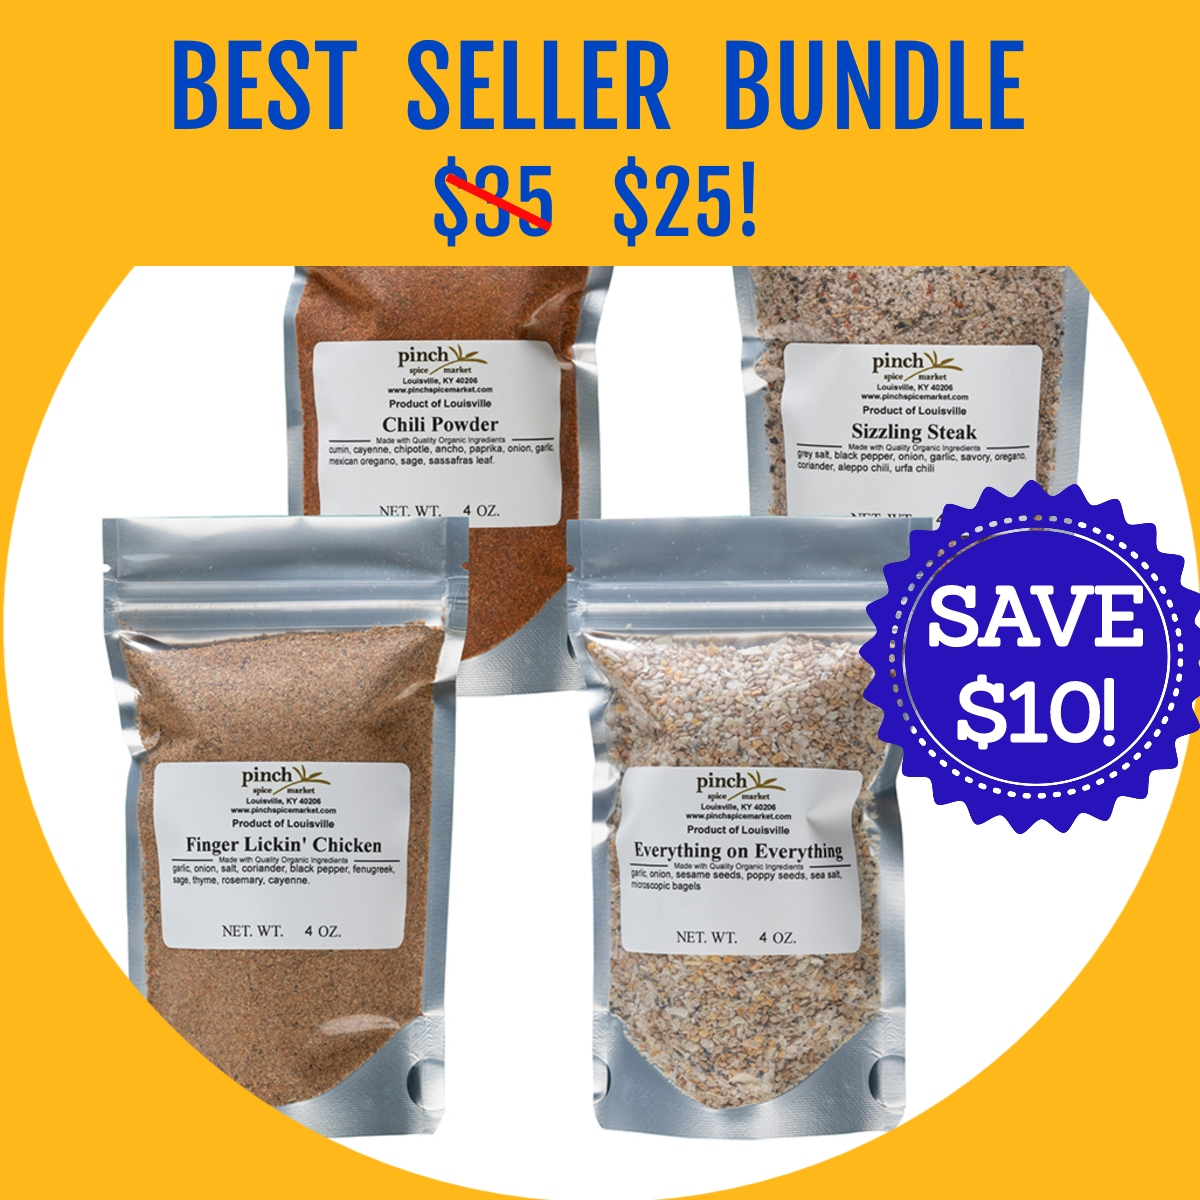 four best selling spice blends from Pinch on sale for Prime Day